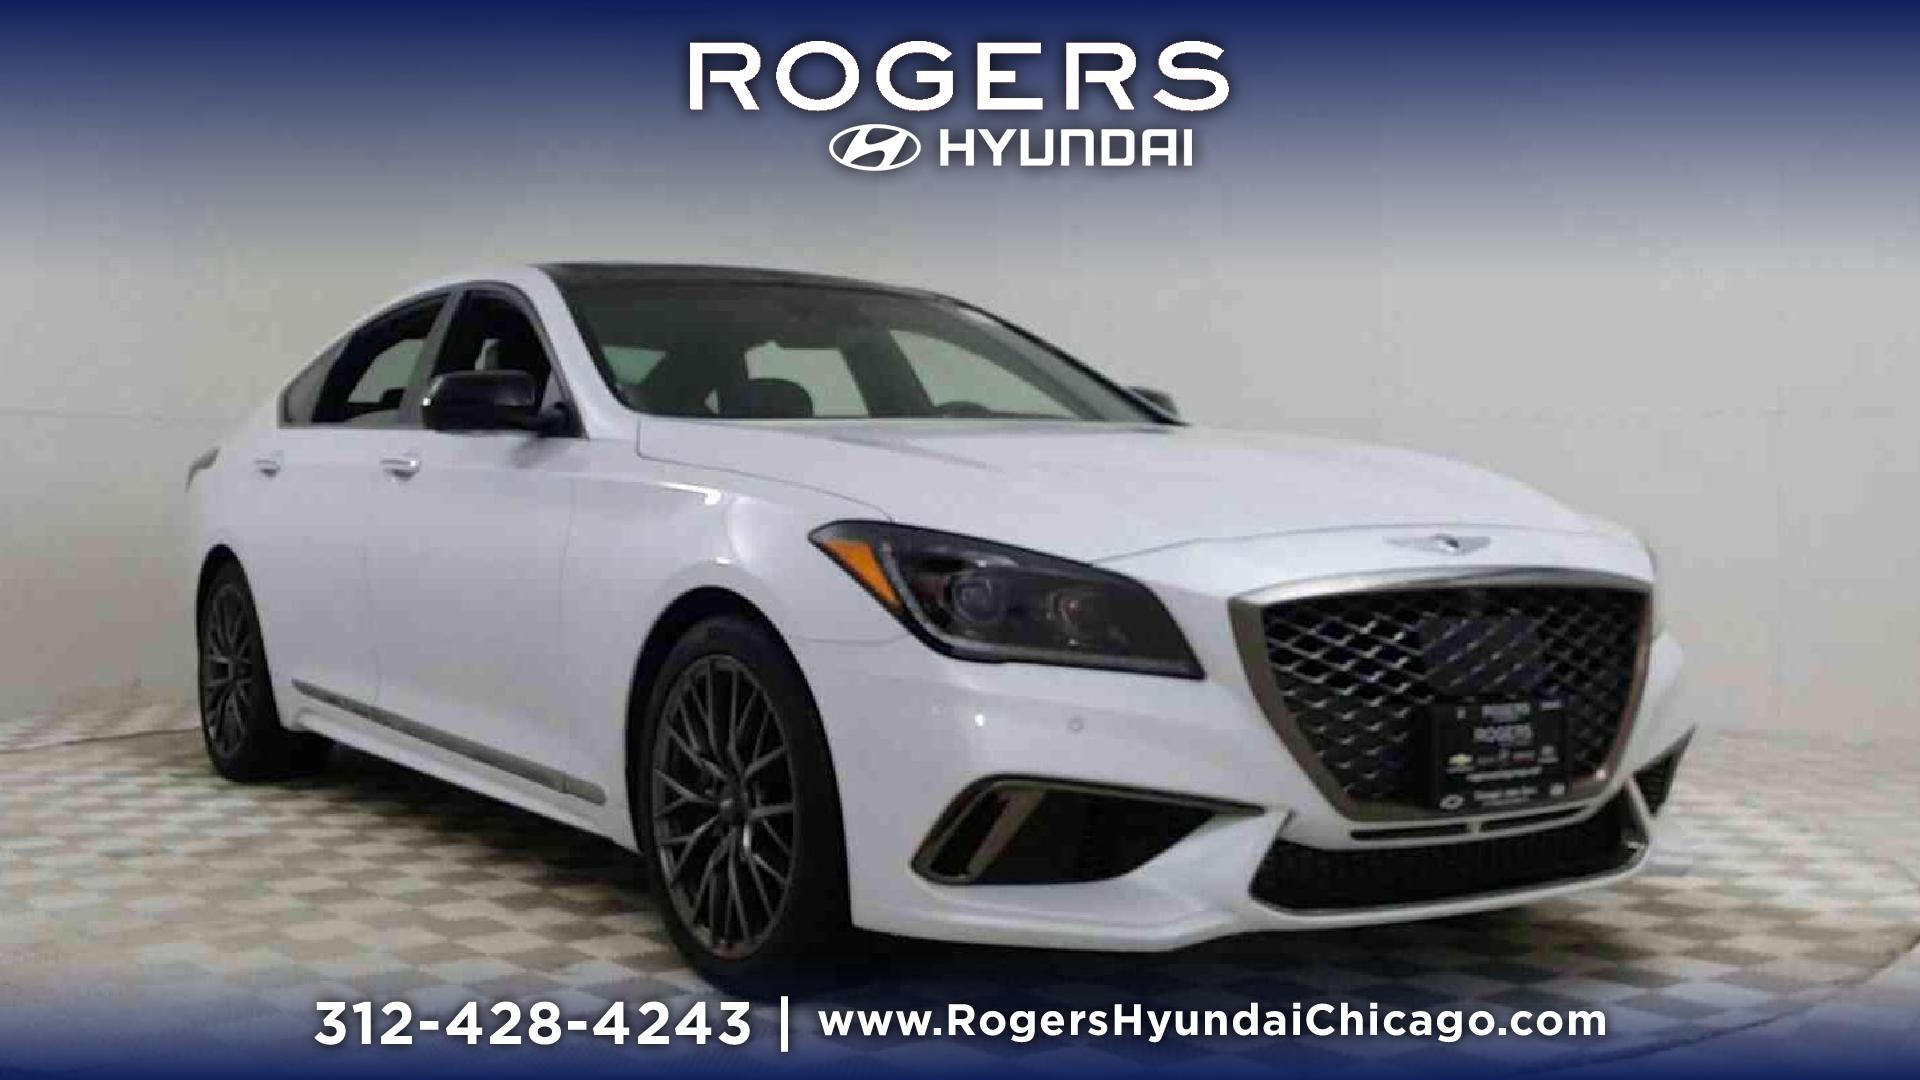 New 2018 Genesis G80 3 3T Sport AWD 4dr Car in Chicago H8431D